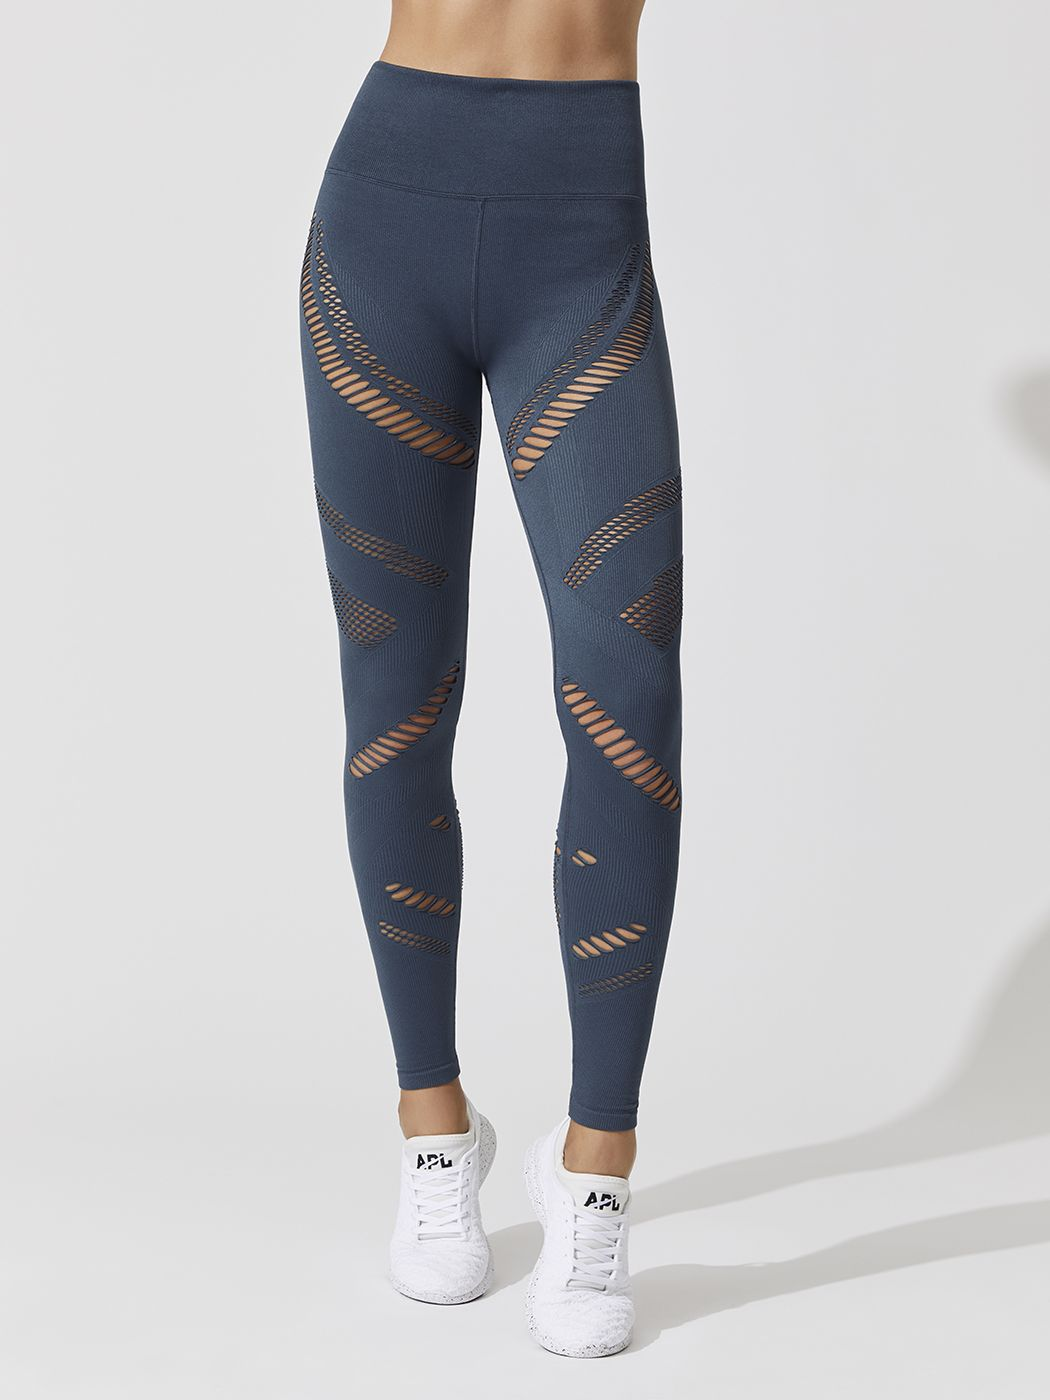 9272095b863ea High Waist Seamless Radiance Leggings in Indigo by Alo Yoga from Carbon38